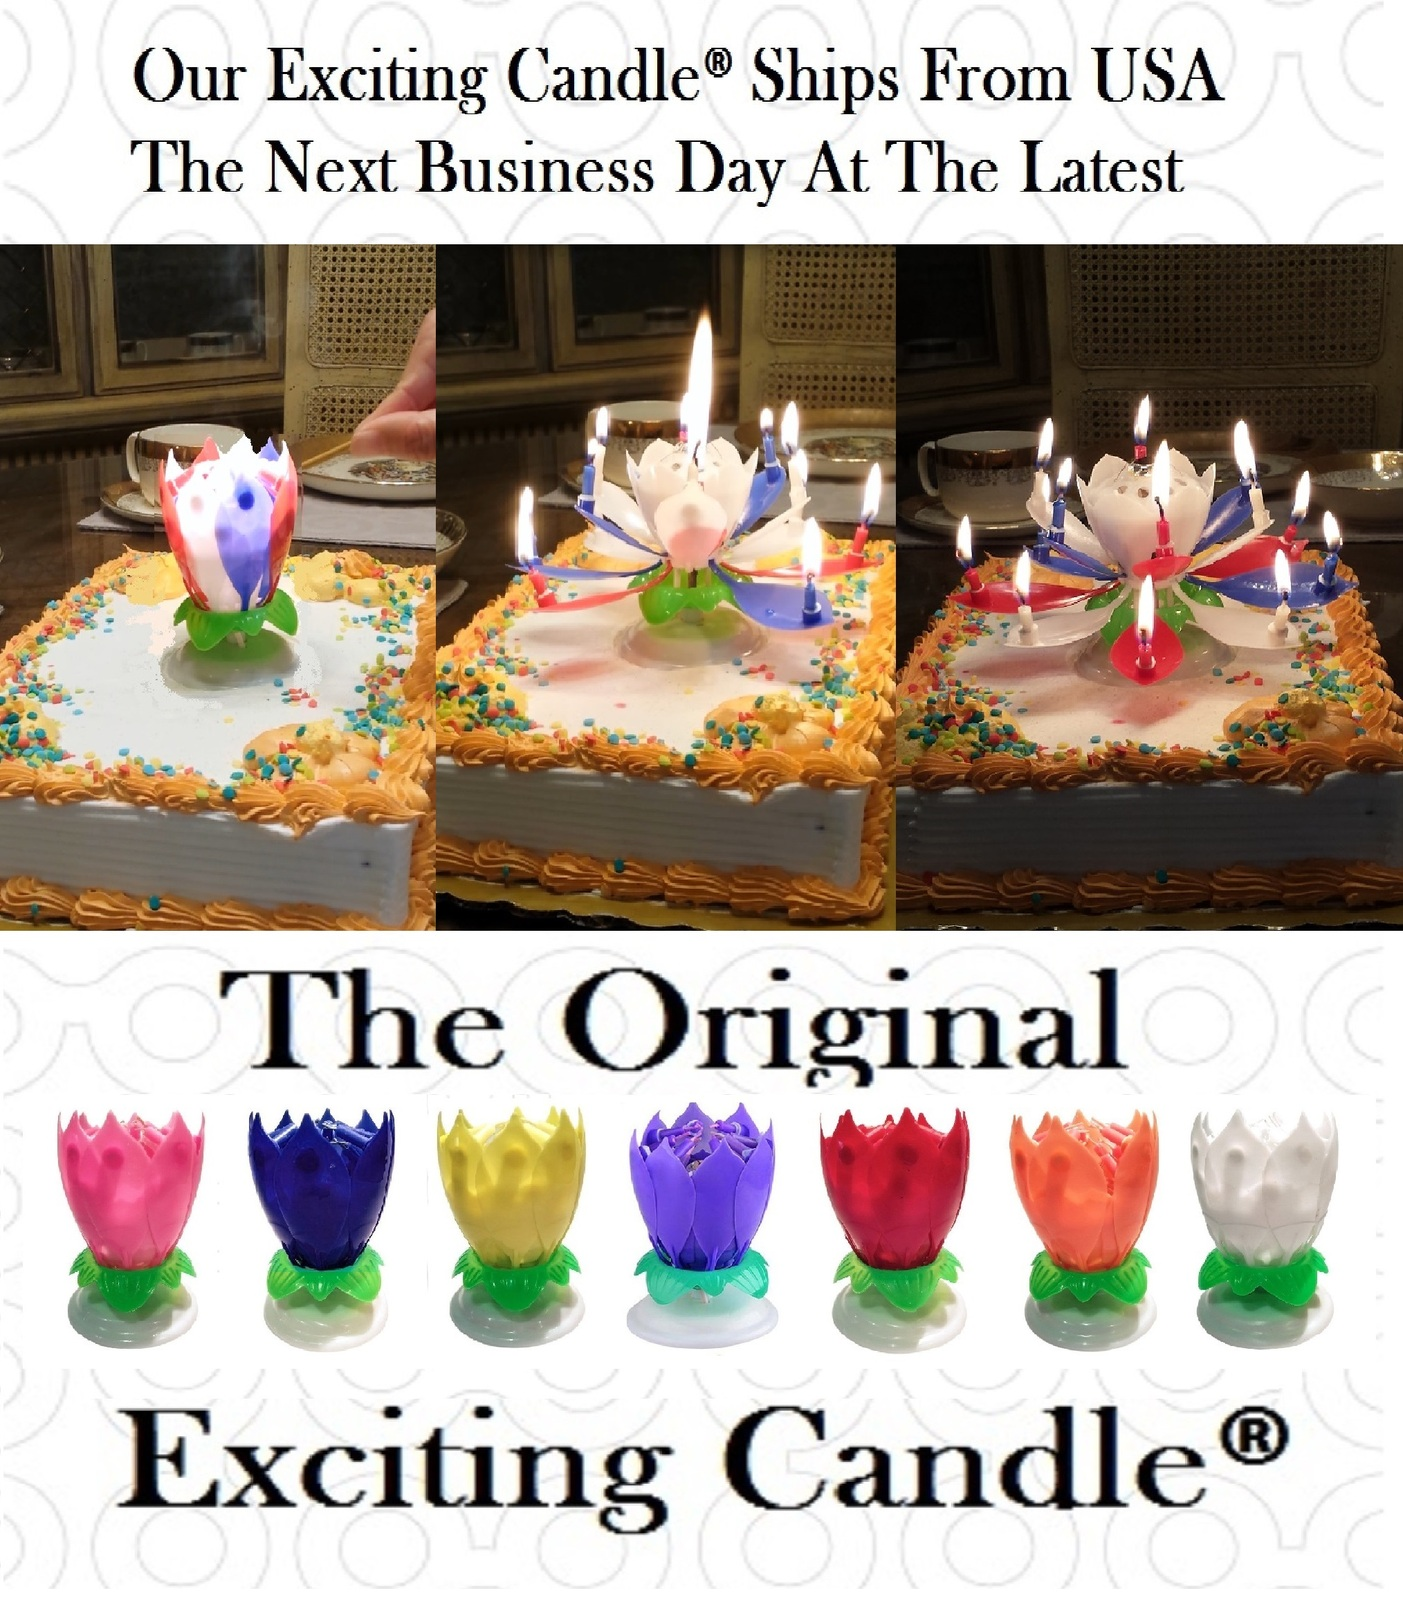 1 Rainbow + 1 R/W/B  Amazing Lotus Flower Music Happy Birthday EXCITING CANDLE